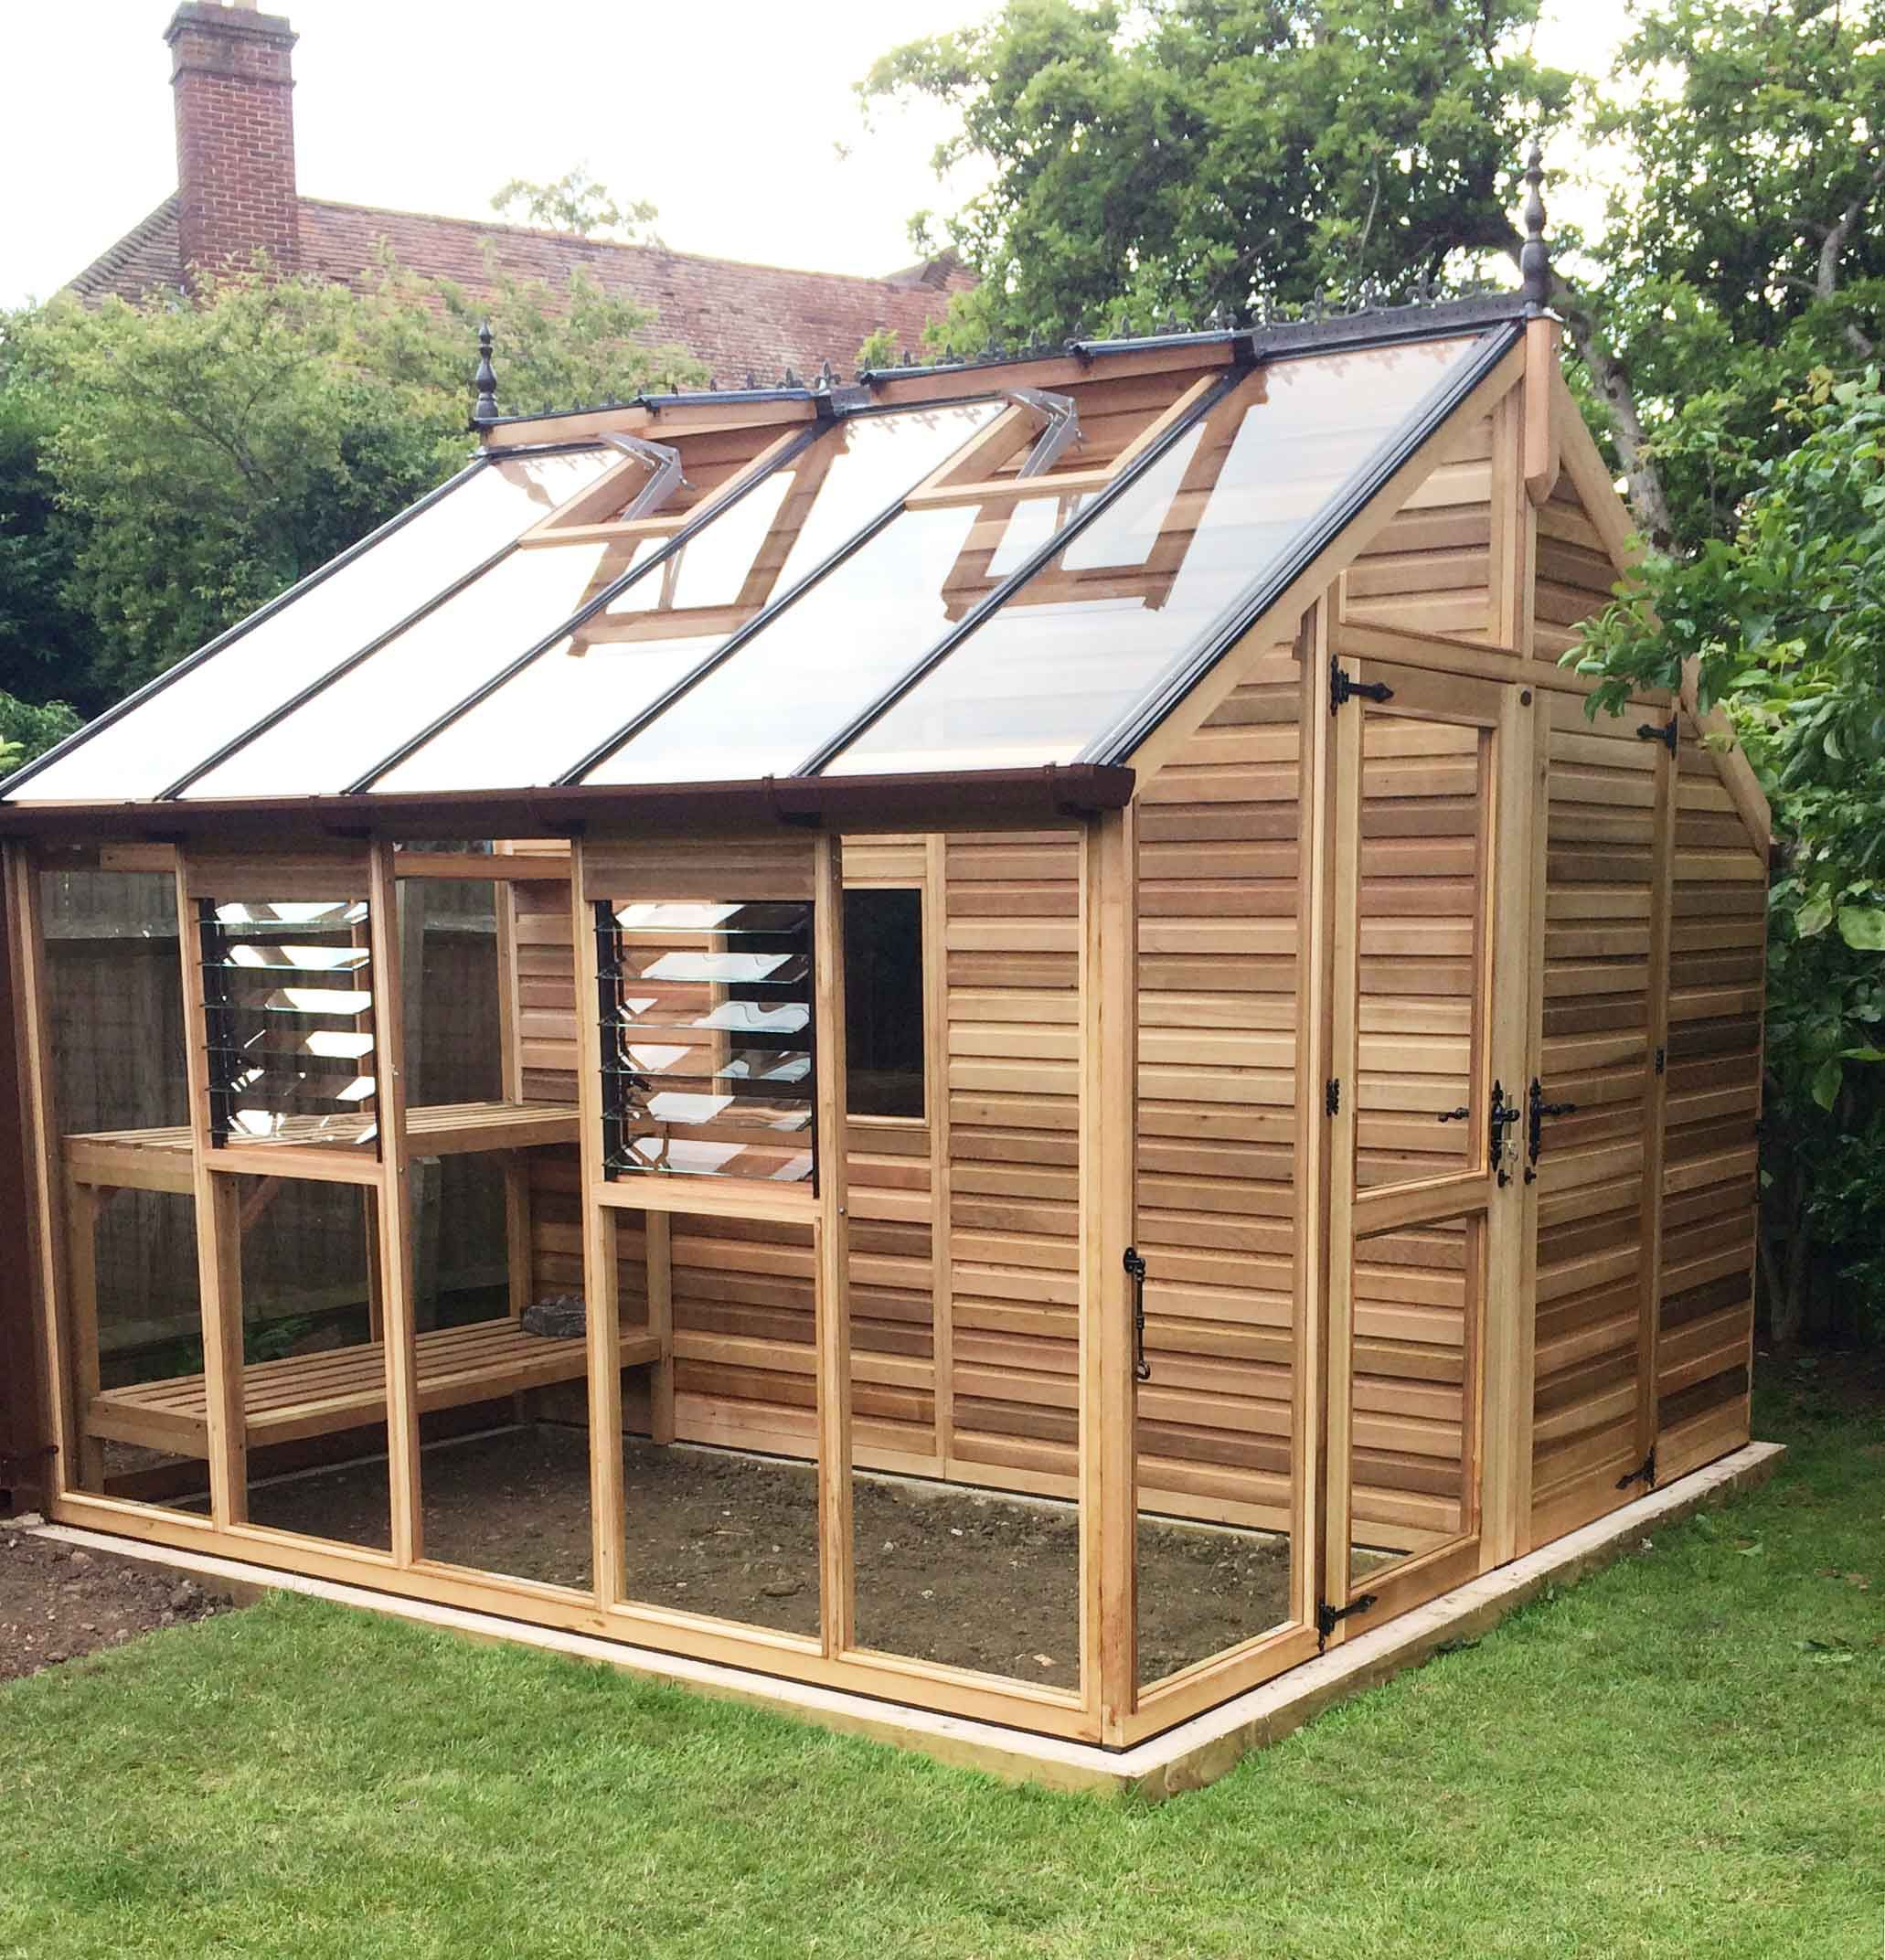 Cedar centaur shed greenhouse combo 12x12 gardening pinterest greenhouses window and house - Cabane de jardin igloo ...